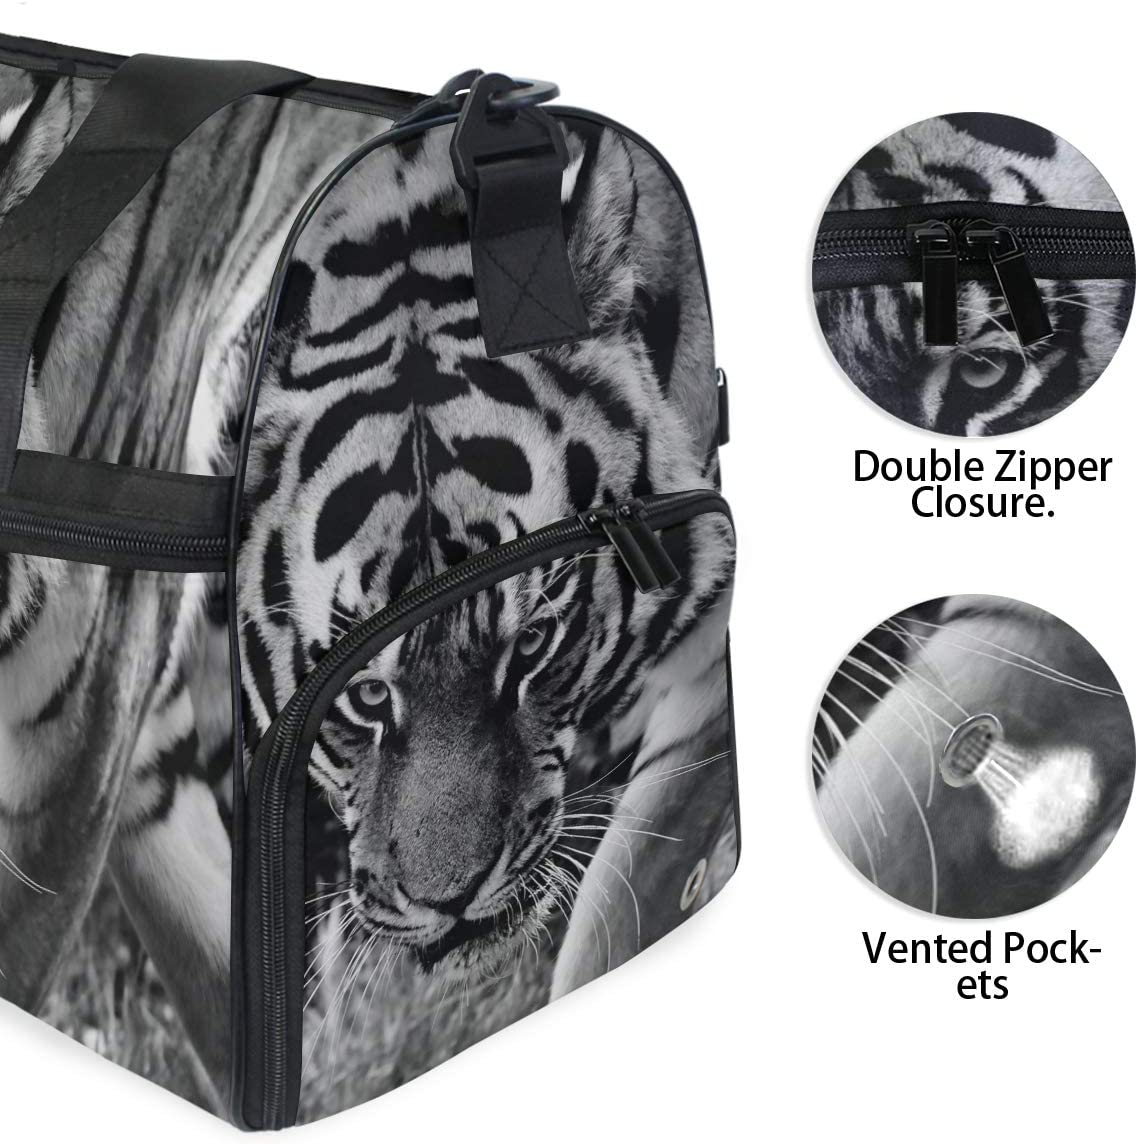 MUOOUM Fierce Tiger Animal King Large Duffle Bags Sports Gym Bag with Shoes Compartment for Men and Women